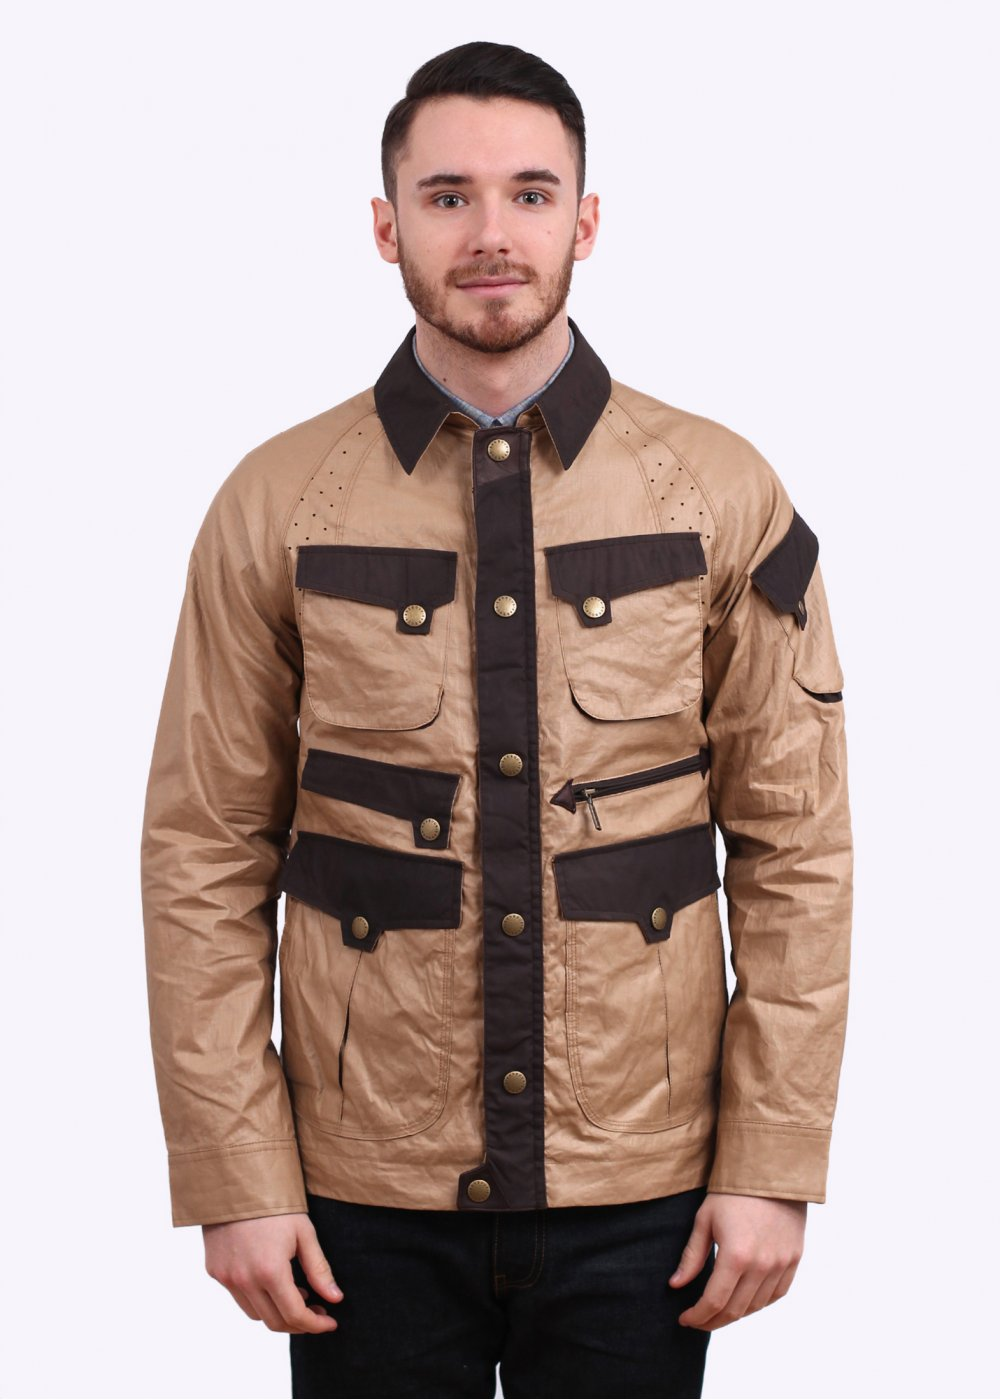 ef86ddc4ab0d Barbour x White Mountaineering Raglan Sleeve Jacket - Bark